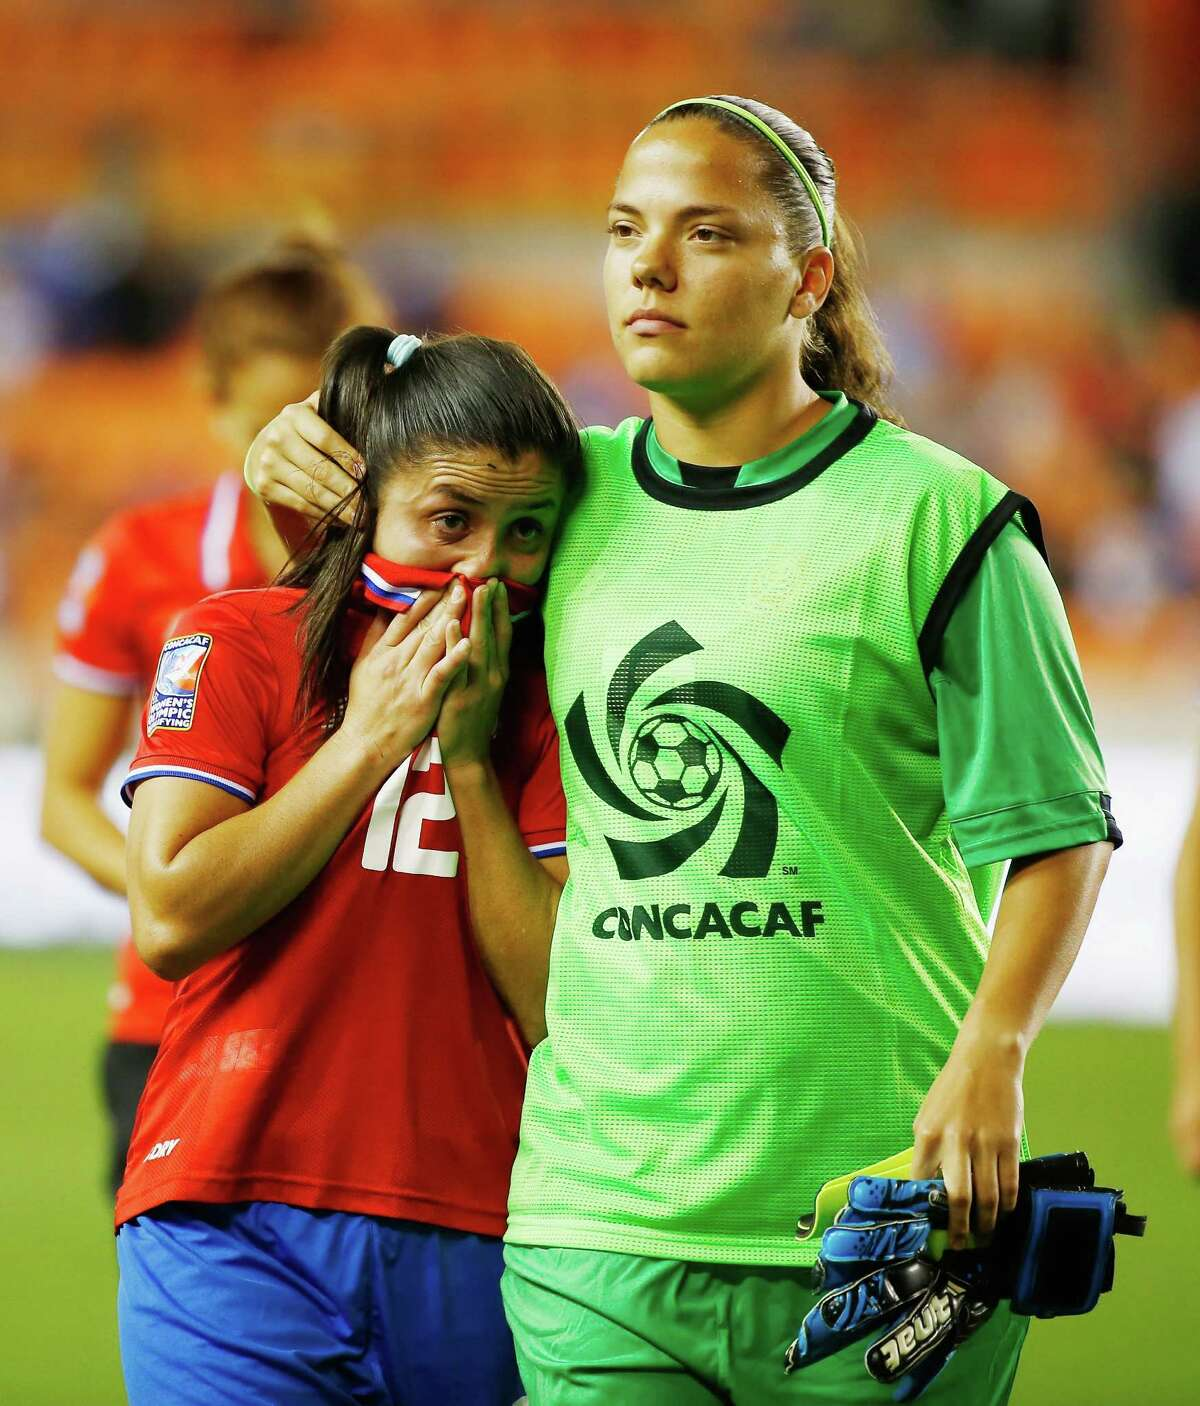 HOUSTON, TX - FEBRUARY 19: Lixy Rodriguez #12 and Yalitza Sanchez #13 of Costa Rica walk off the field after Costa Rica lost to Canada 3-1 during the Semifinal of the 2016 CONCACAF Women's Olympic Qualifying at BBVA Compass Stadium on February 19, 2016 in Houston, Texas.